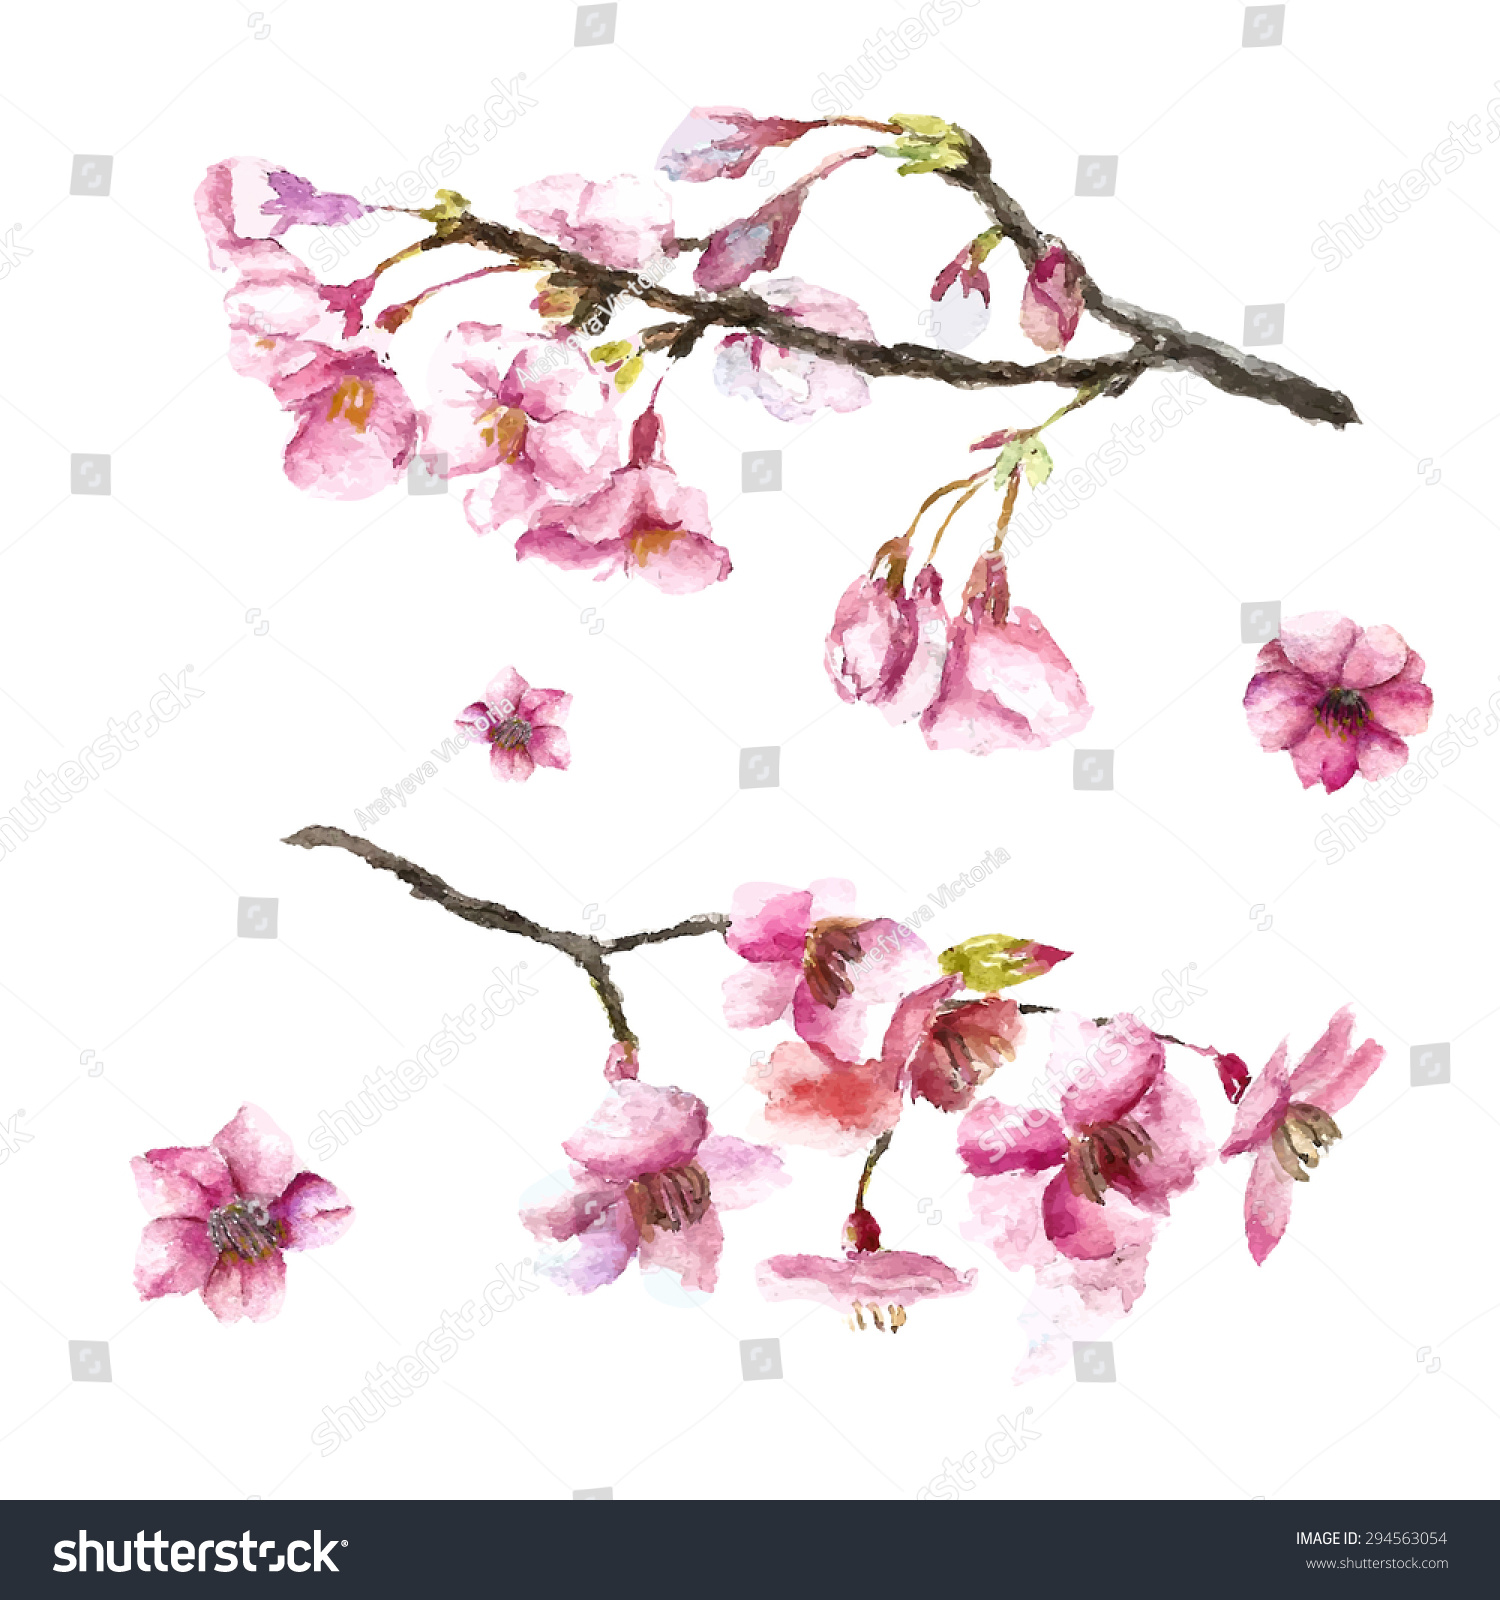 watercolor cherry blossom hand draw cherry blossom sakura branch and flowers vector illustrations